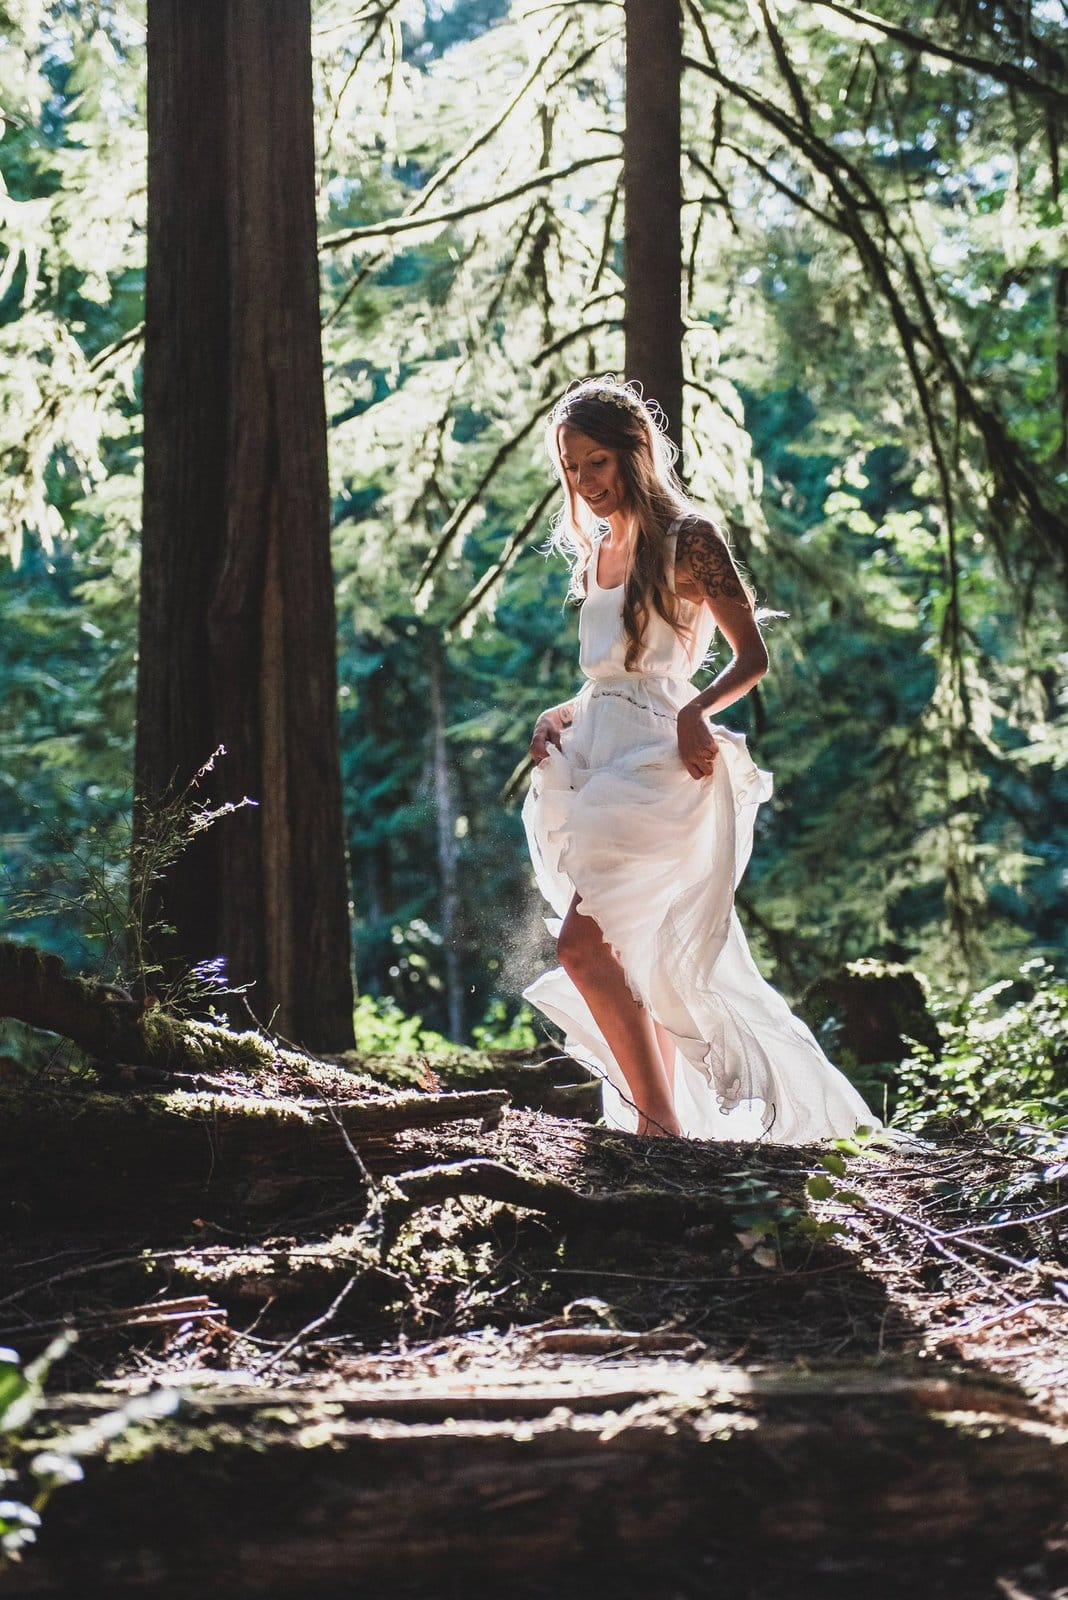 Bridal portrait in the forest.